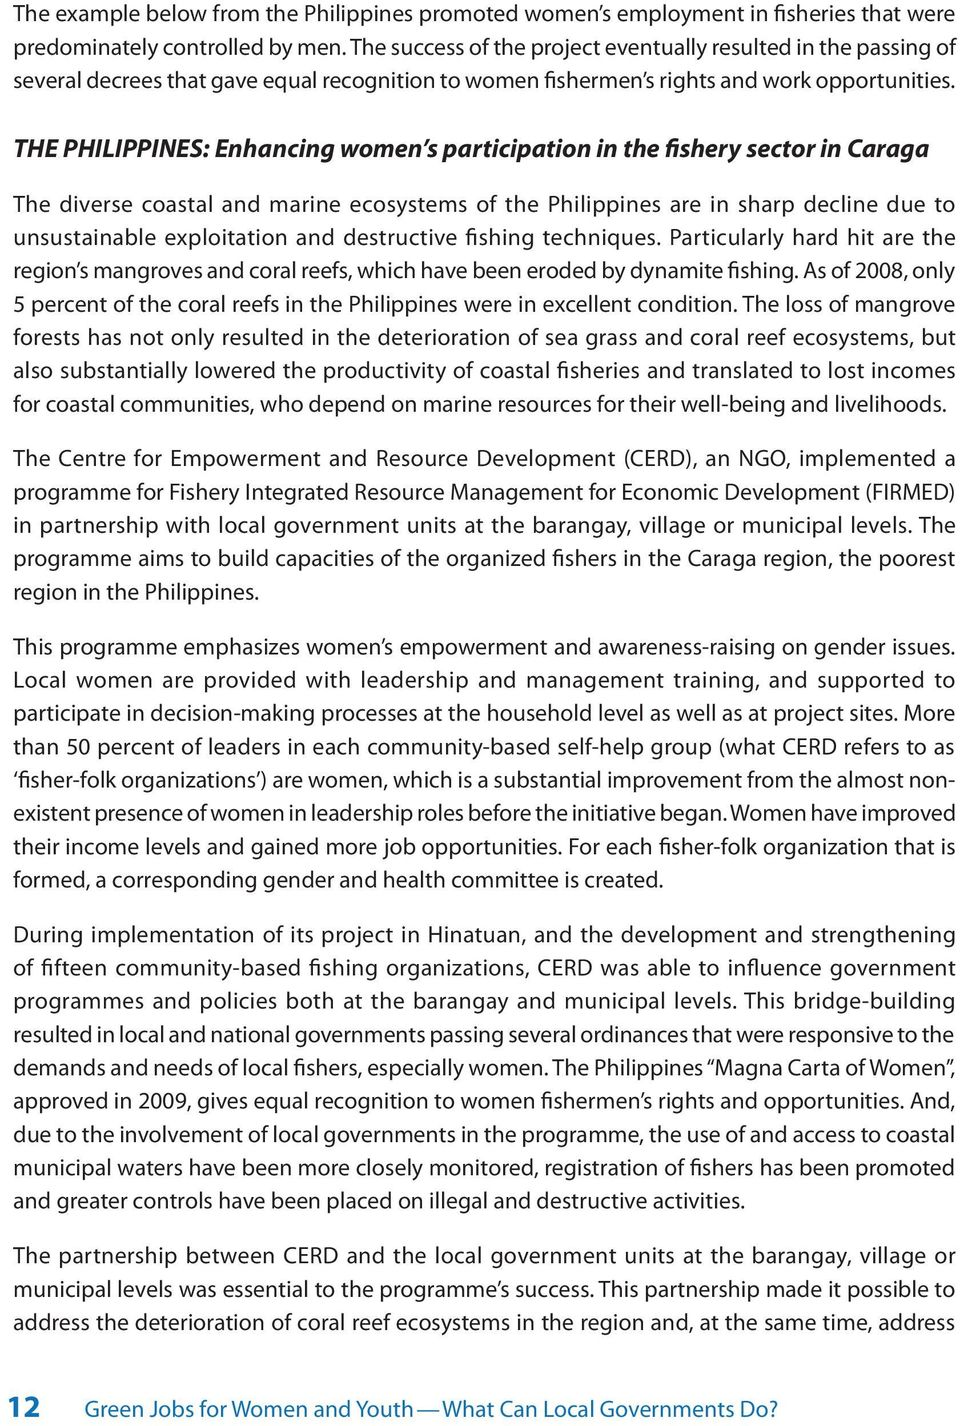 THE PHILIPPINES: Enhancing women s participation in the fishery sector in Caraga The diverse coastal and marine ecosystems of the Philippines are in sharp decline due to unsustainable exploitation